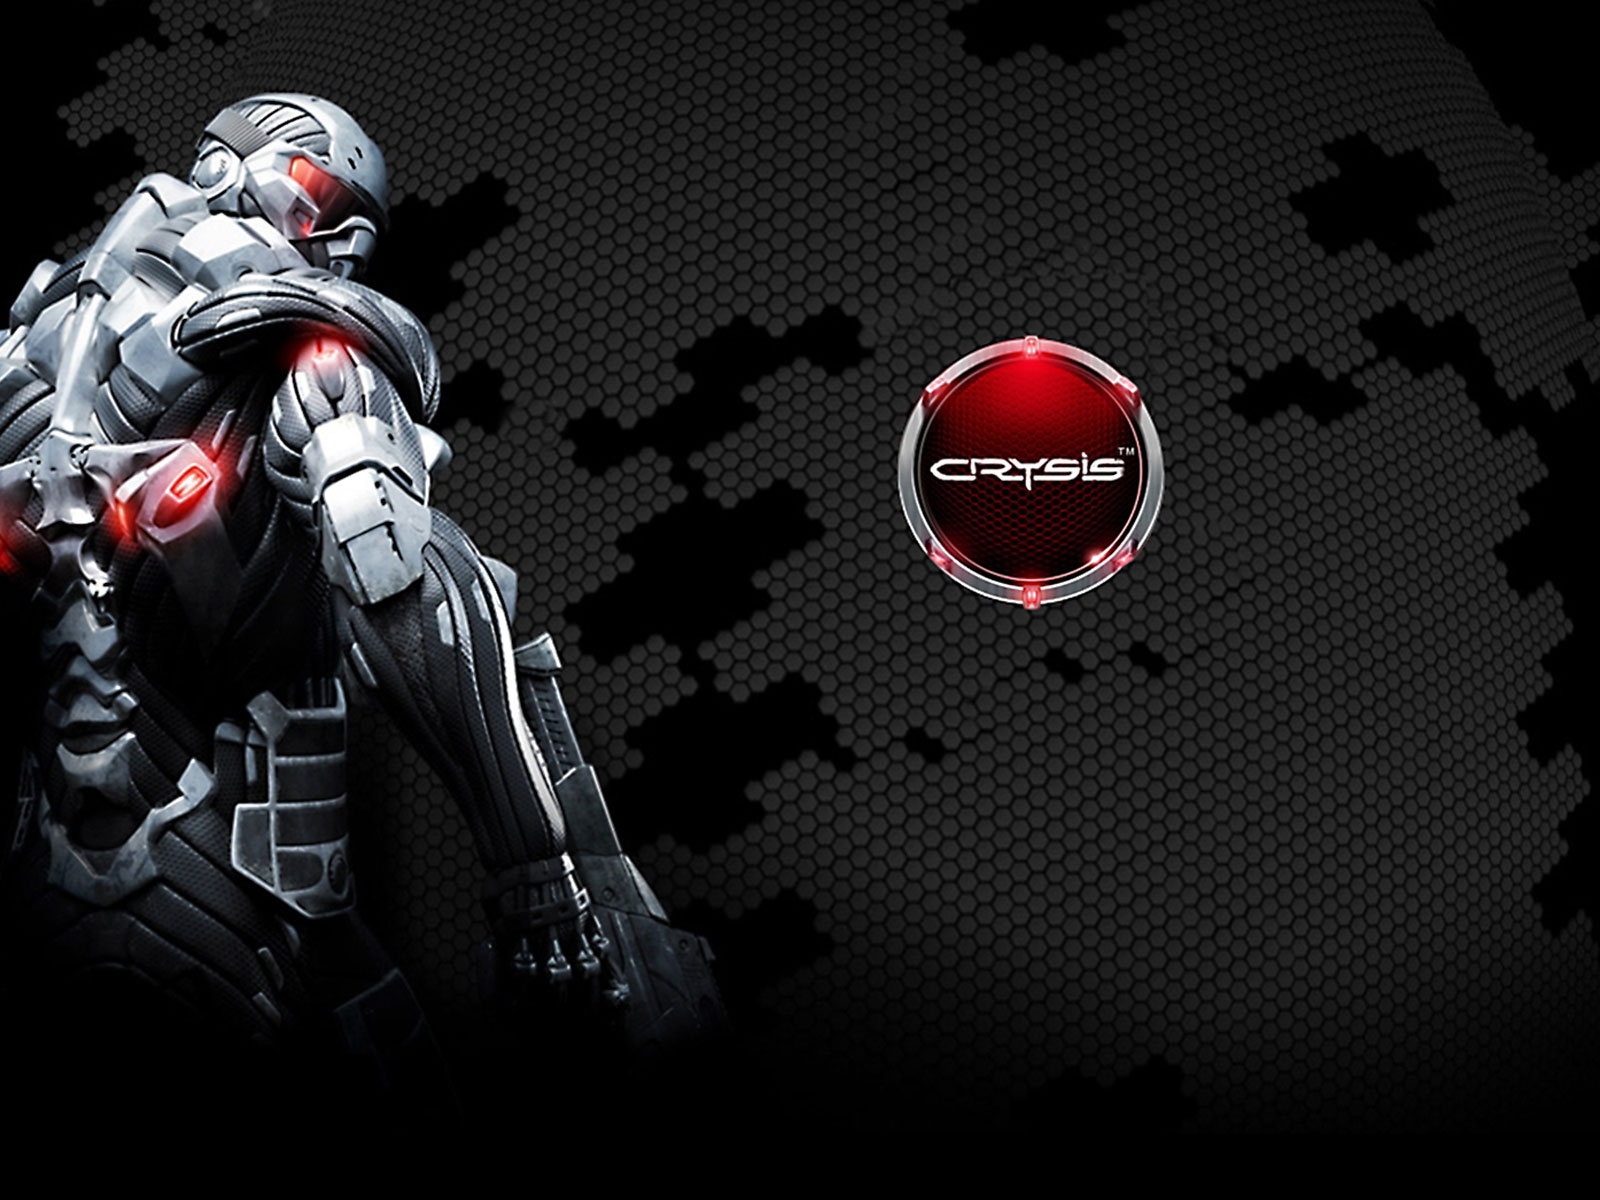 Crysis Wallpaper Themes